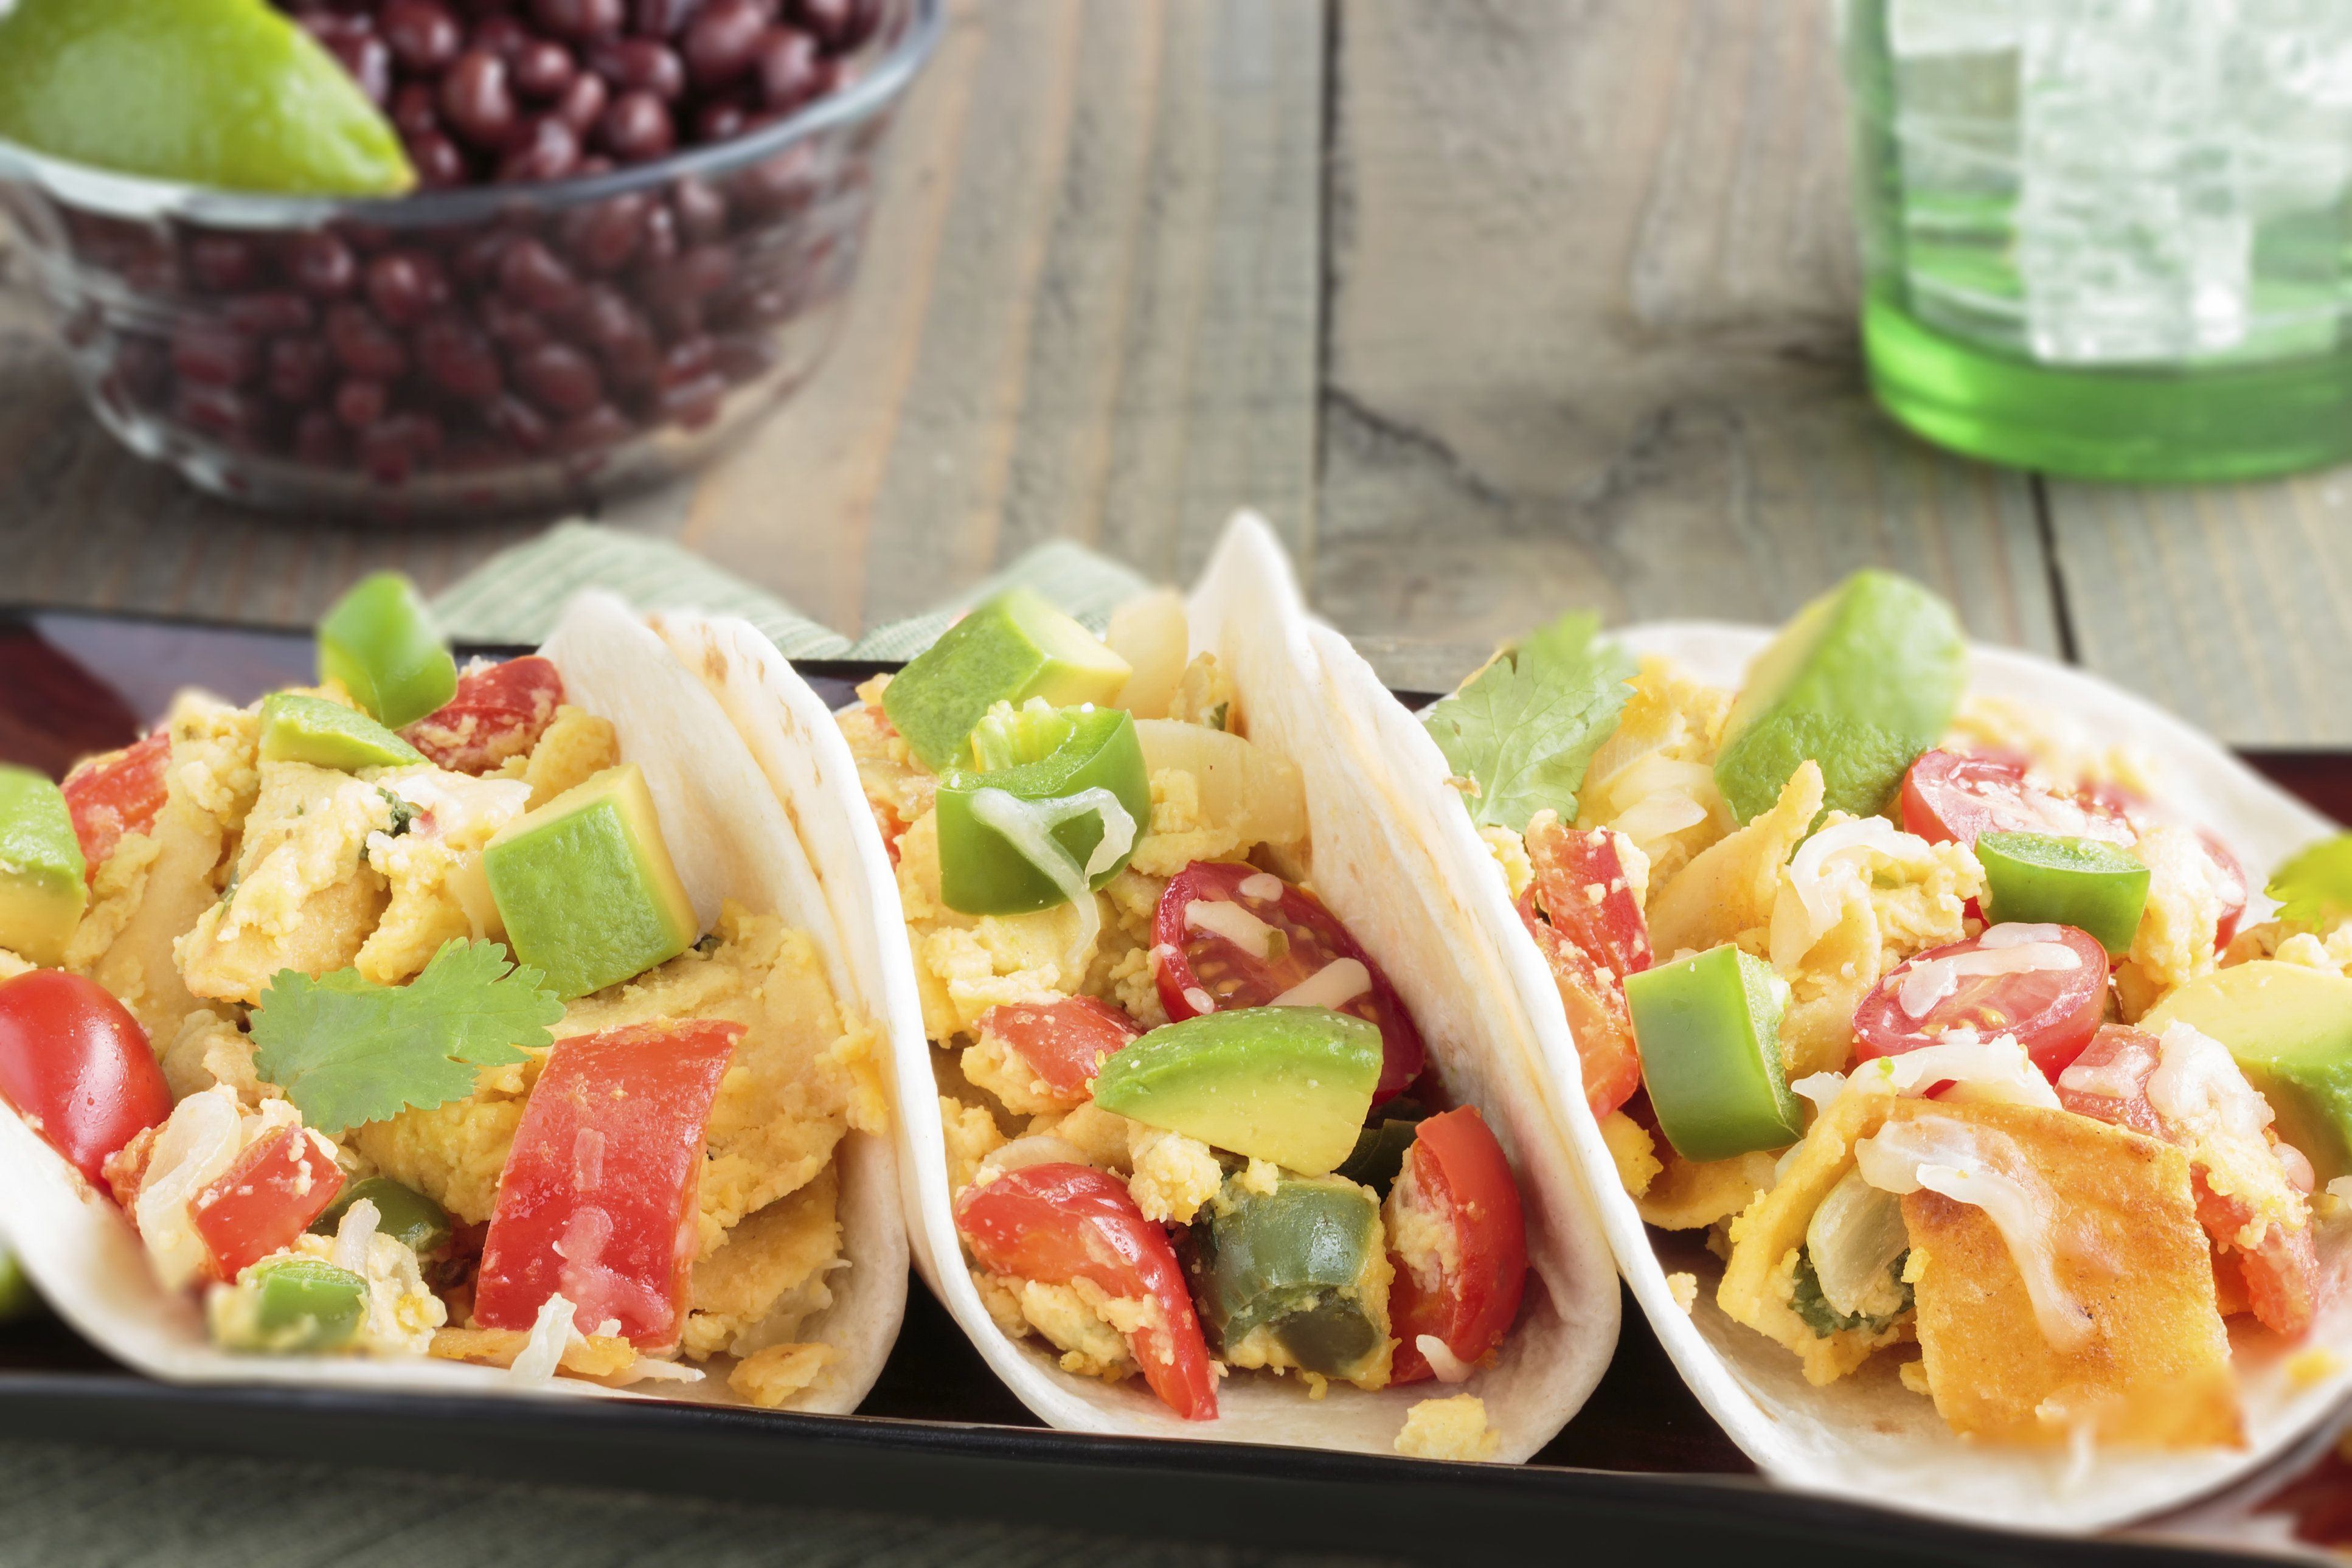 Tacos filled with migas, a Tex-Mex dish of eggs scrambled with red bell pepper, onions, jalapenos, cheese, topped with avocado, cilantro, cherry tomatoes, served with black beans